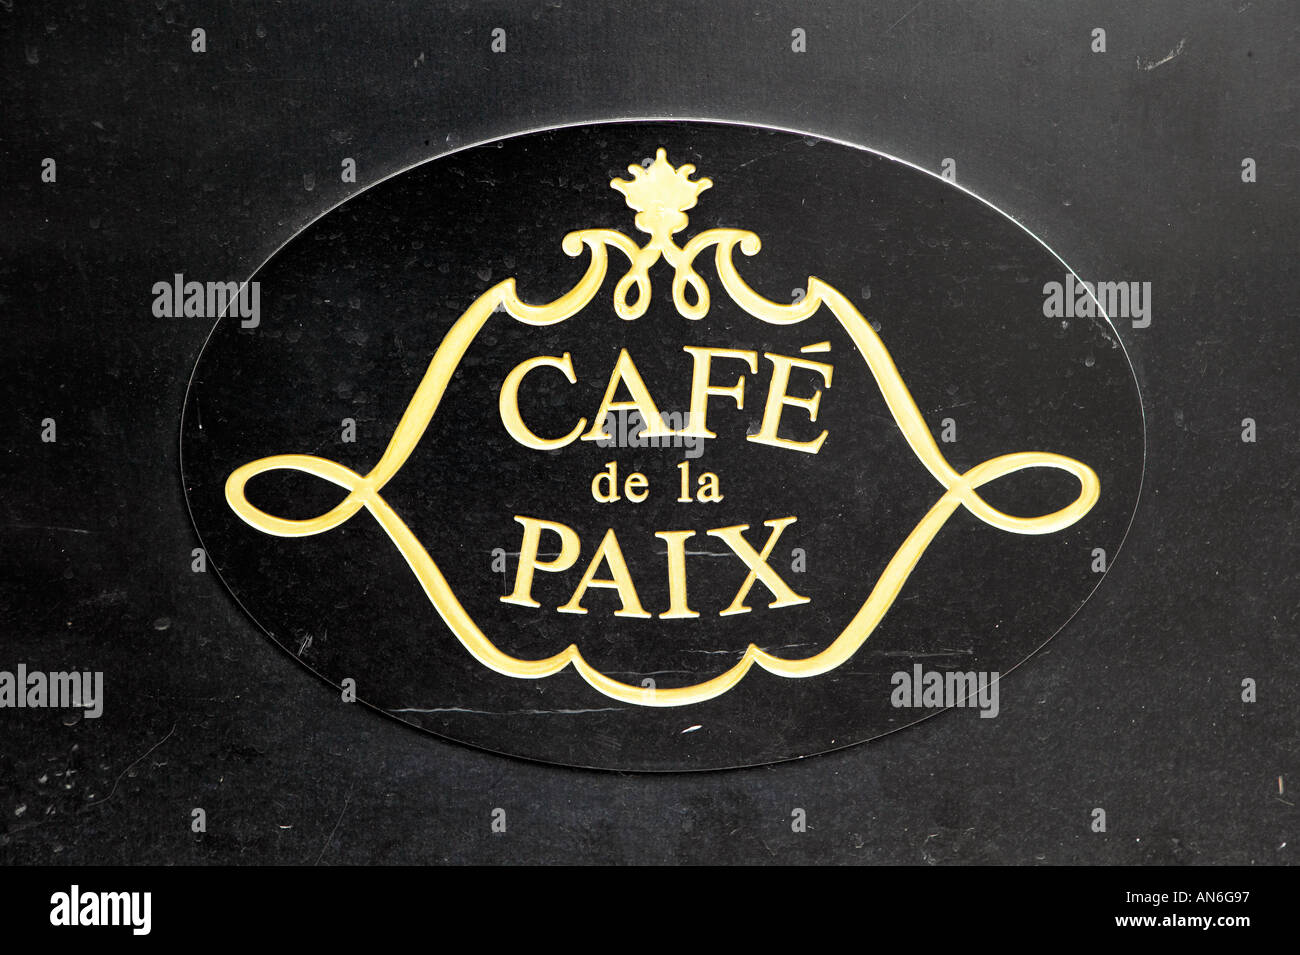 Cafe De La Paix Paris Opera House Paris France Stock Photo Alamy